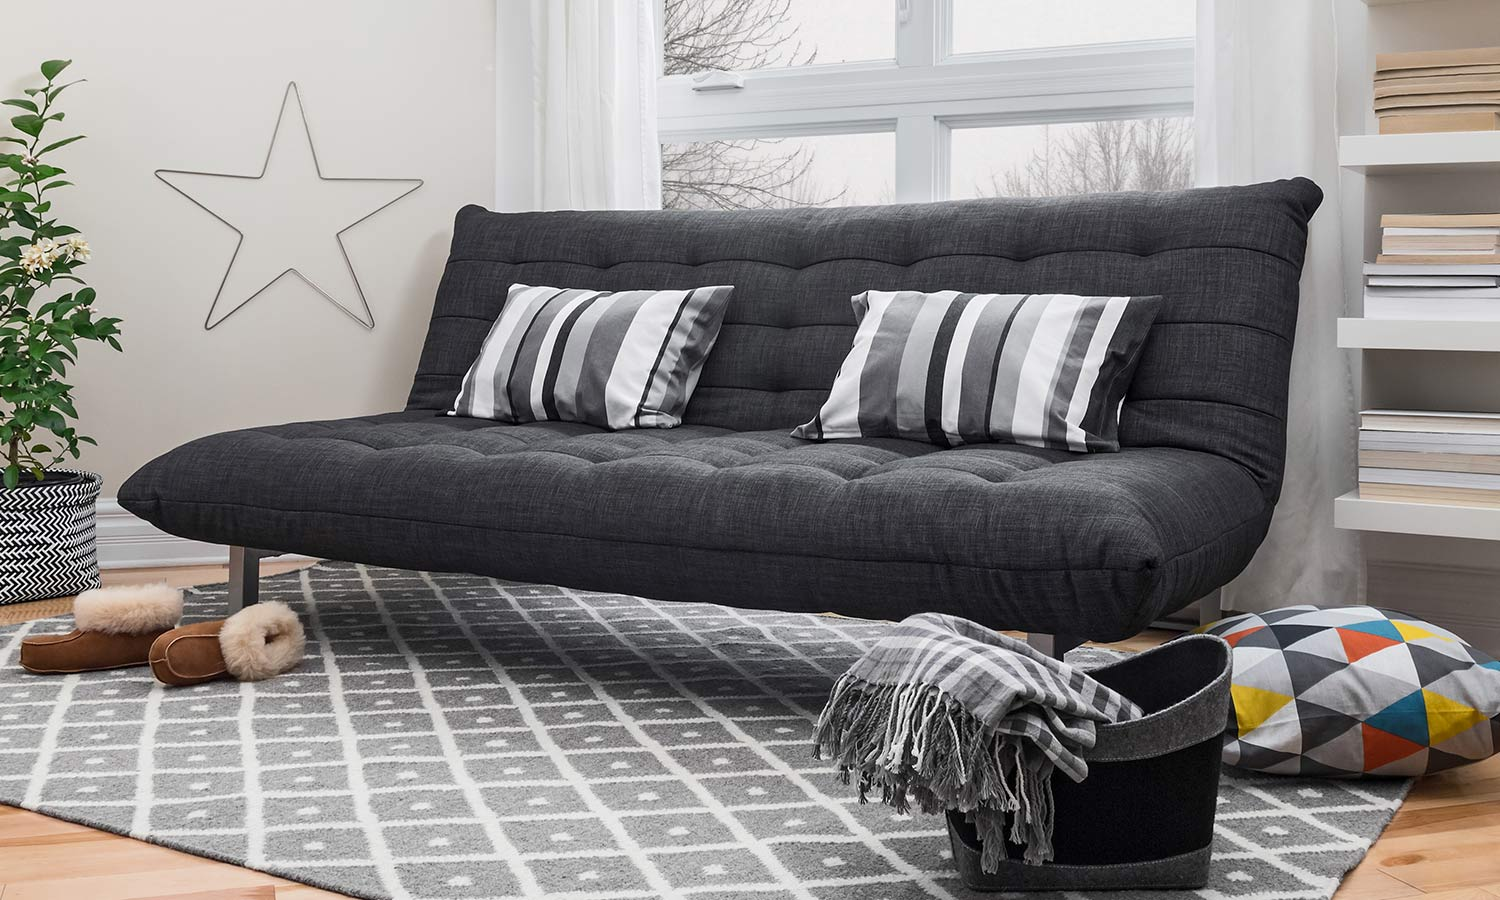 A foldable futon with pillows on top